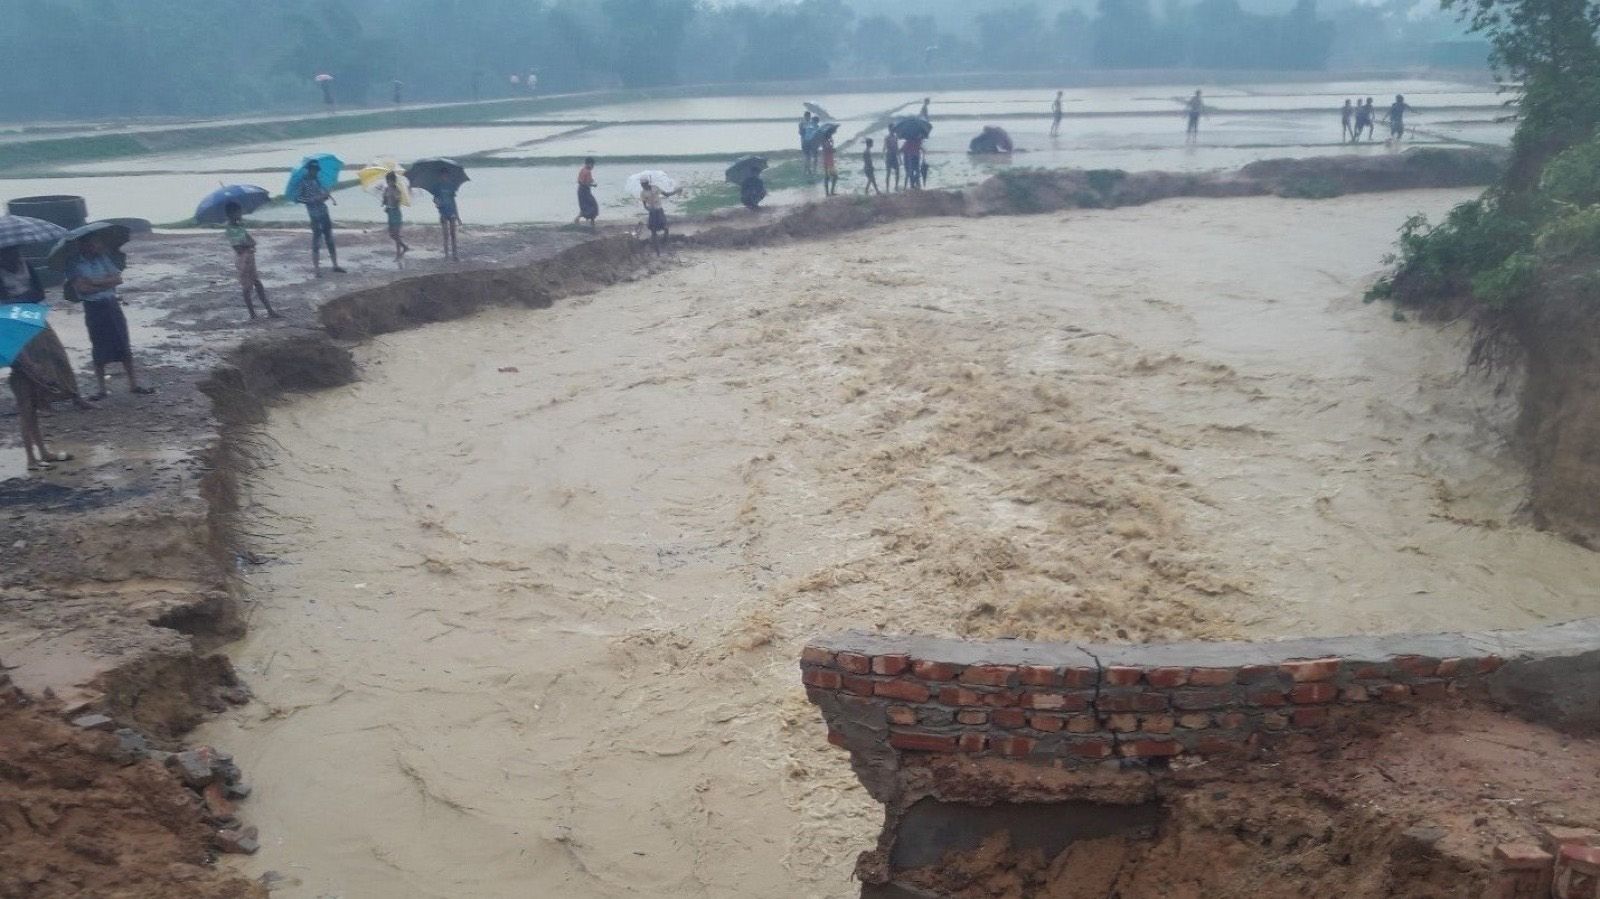 Floods in Kutupalong refugee camp in Bangladesh